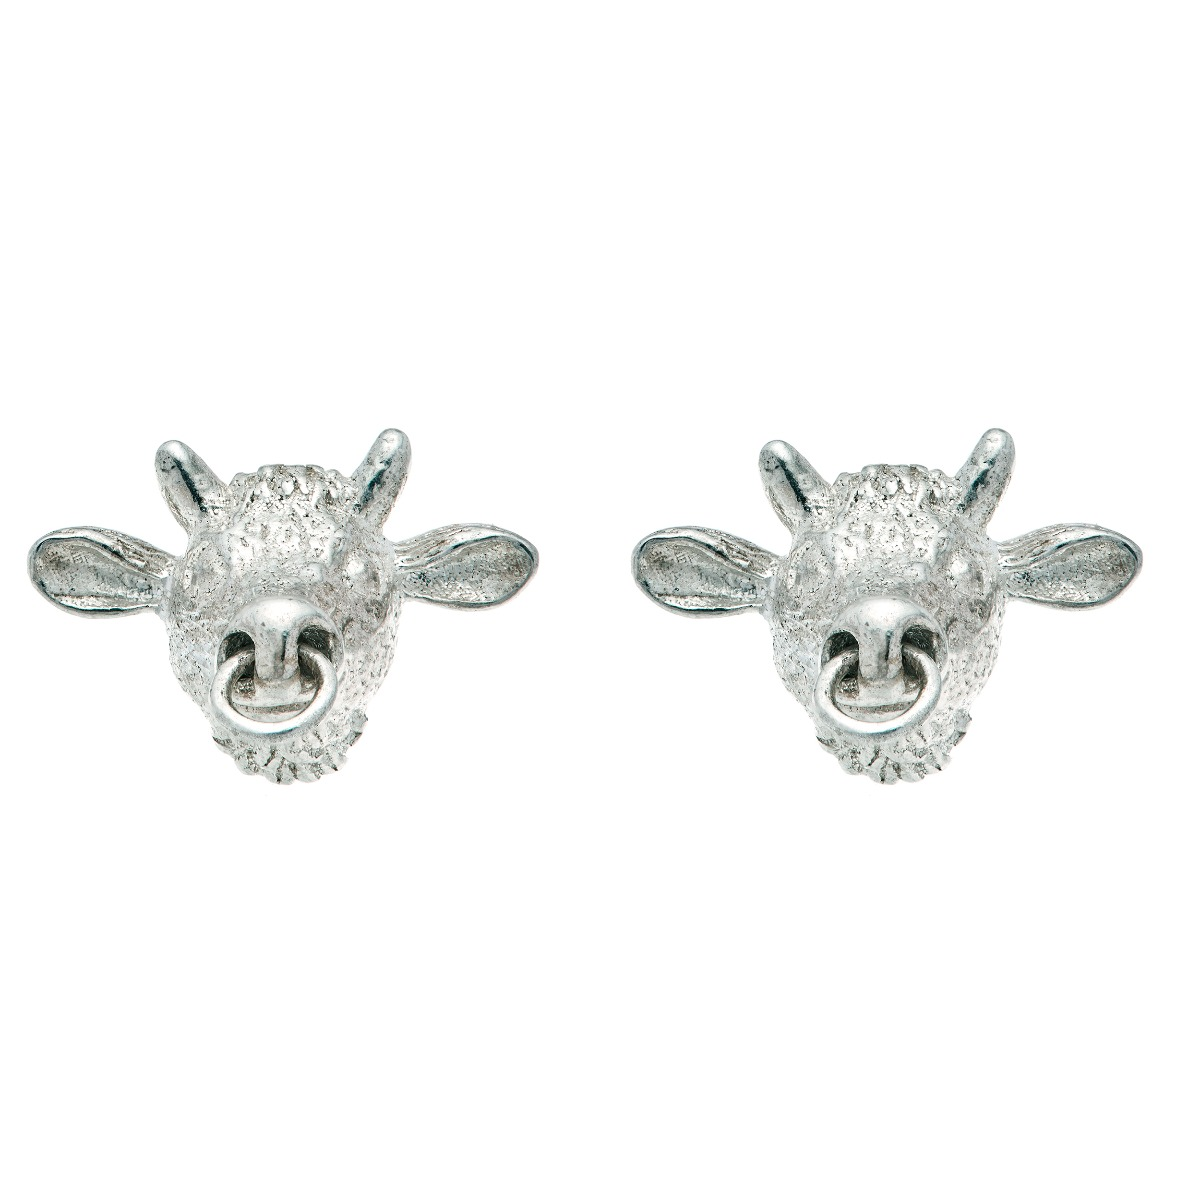 Chinese zodiac stud earrings (ox)